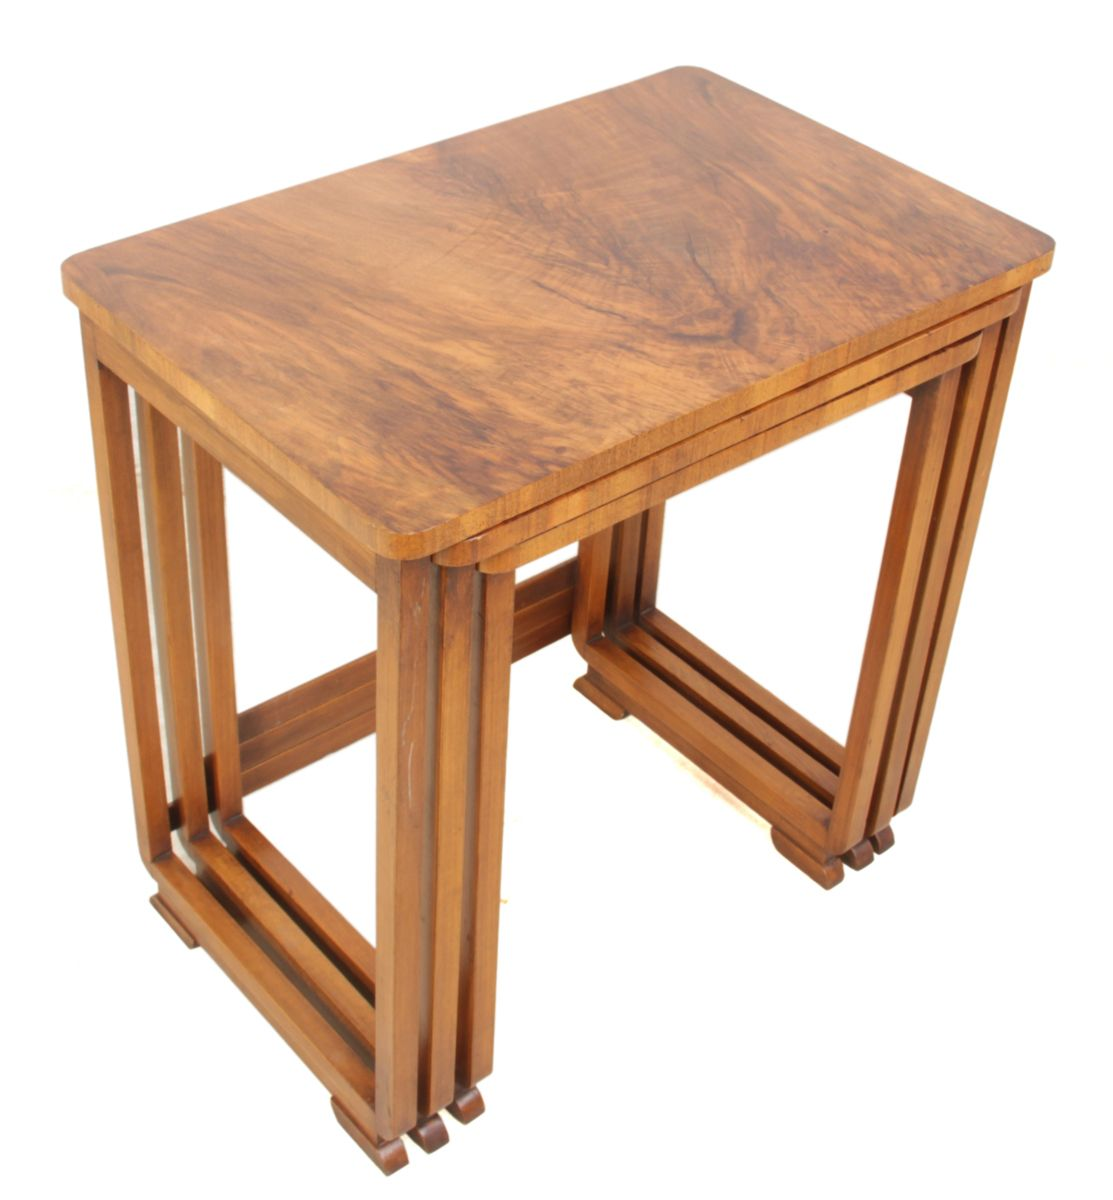 Art deco walnut nesting tables 1930s set of 3 for sale for Meuble art deco 1930